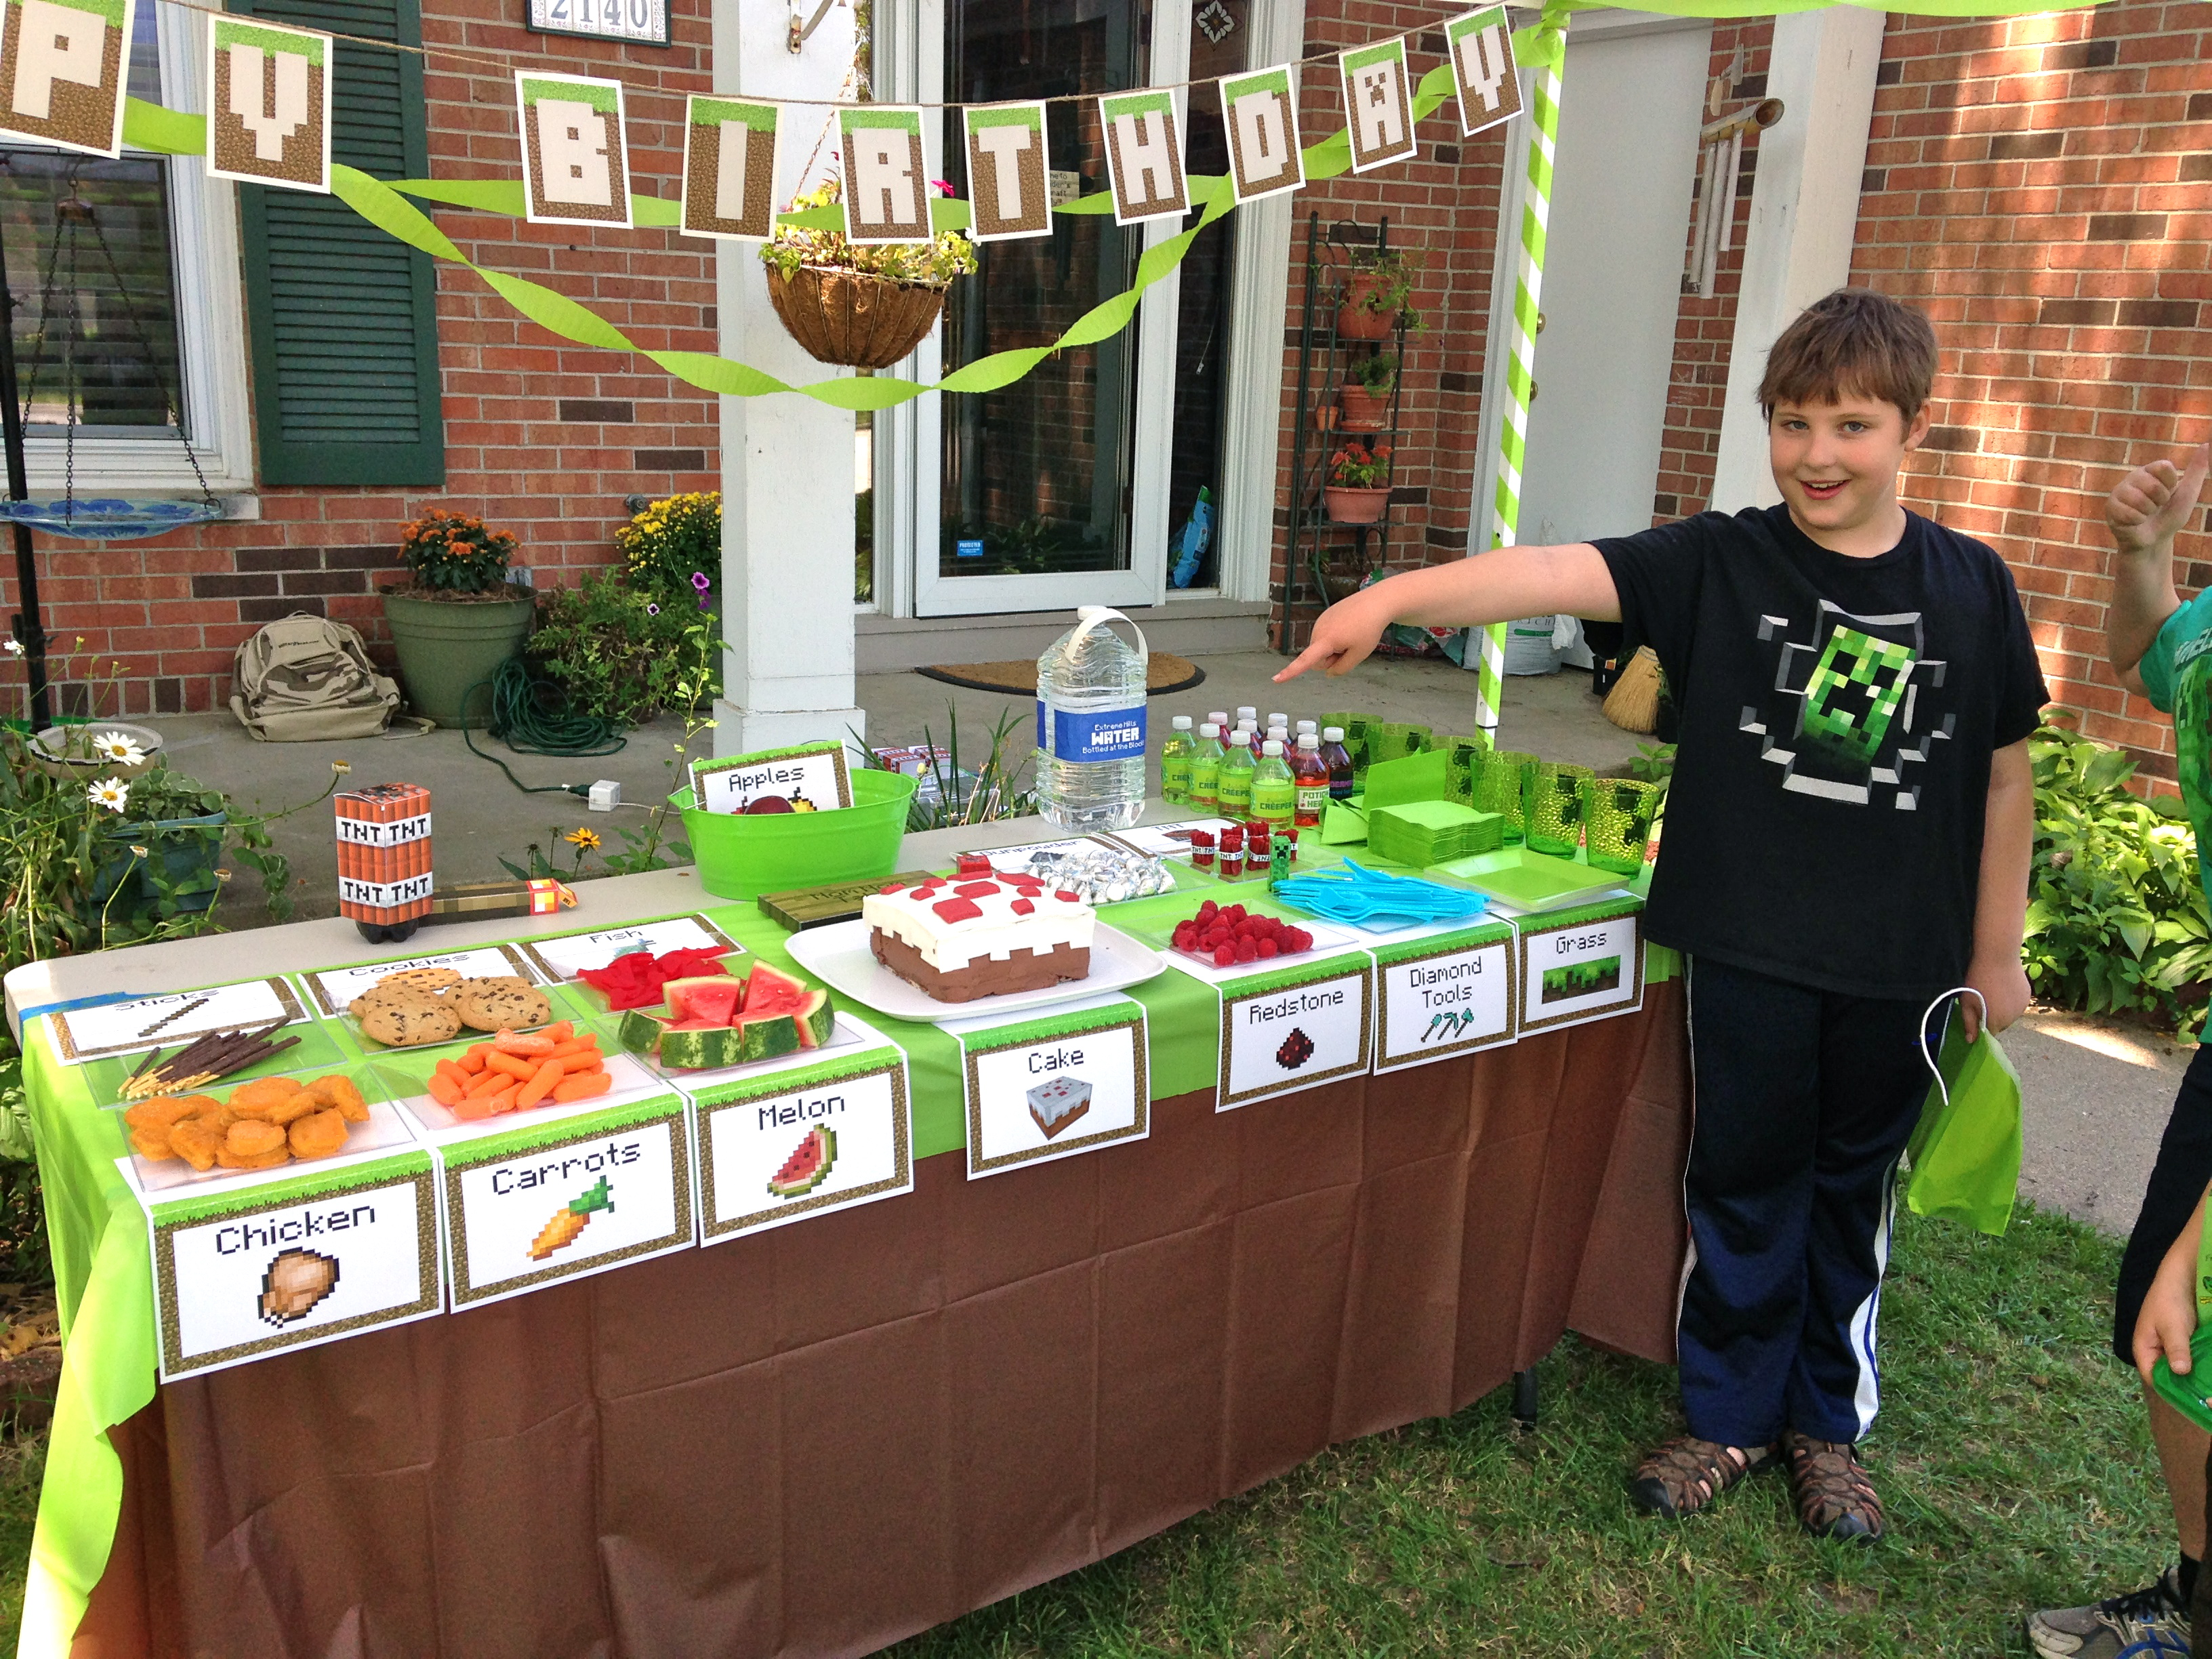 photograph relating to Minecraft Free Printable Food Labels referred to as An Epic Minecraft Birthday Occasion (with Game titles and Printables